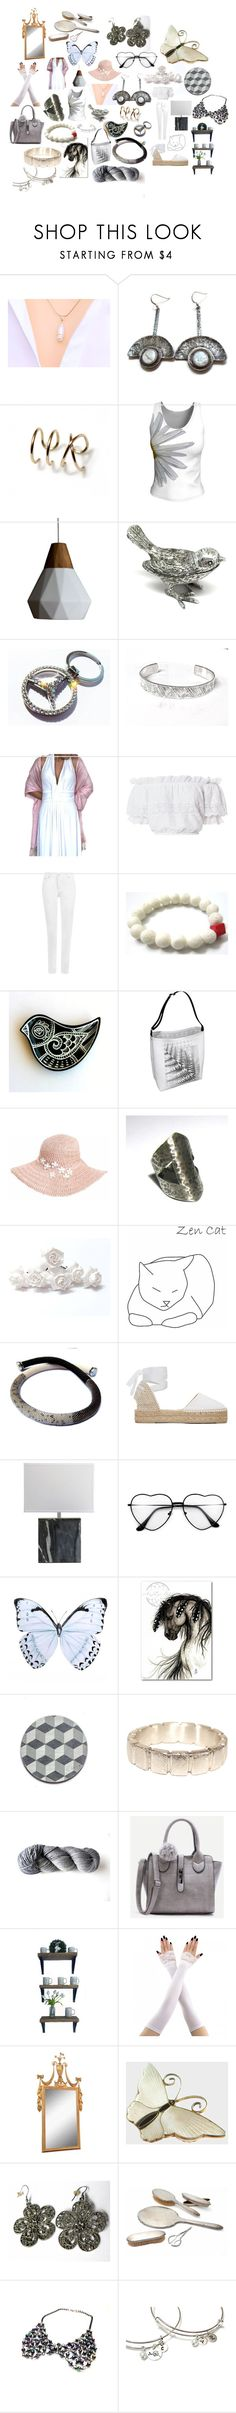 """""""White beauty"""" by planitisgi ❤ liked on Polyvore featuring Jeffan, LoveShackFancy, WearAll, Dorfman Pacific, Manebí, Anello, Gorham, Mother Daughter Jewelry and whitebeauty"""